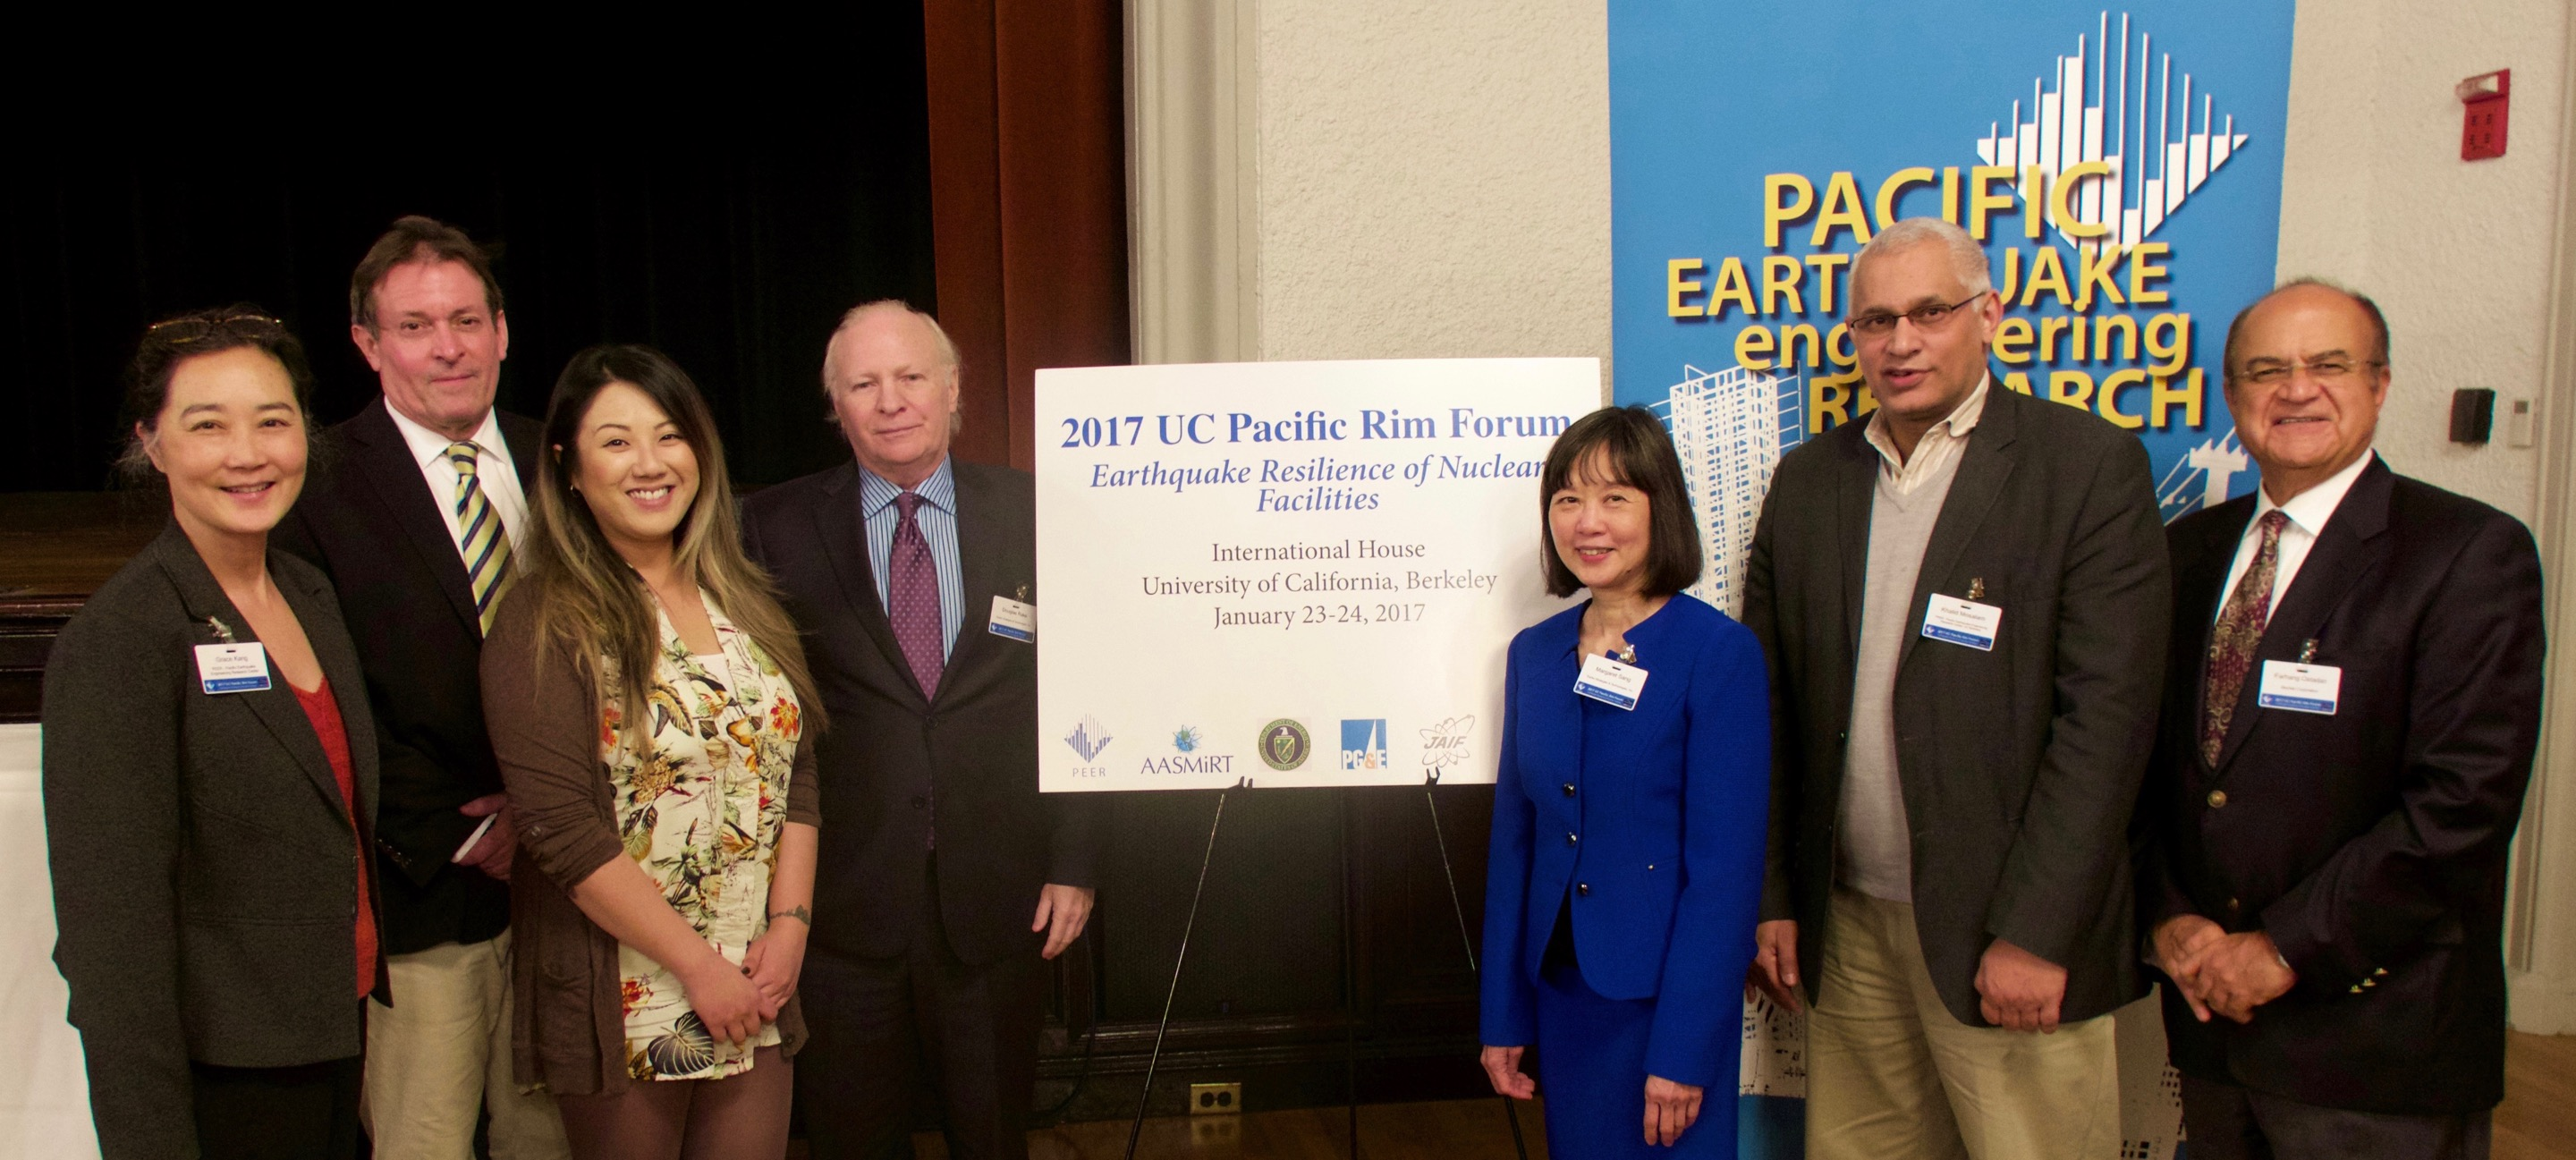 Pacific Rim Forum Organizing Committee: Grace Kang PEER, David McCallen LBNL/UCOP, Carol Chien LBNL, Doug Rake and Margaret Sang Rake Strategies, Khalid Mosalam UC Berkeley, Farhang Ostadan Bechtel